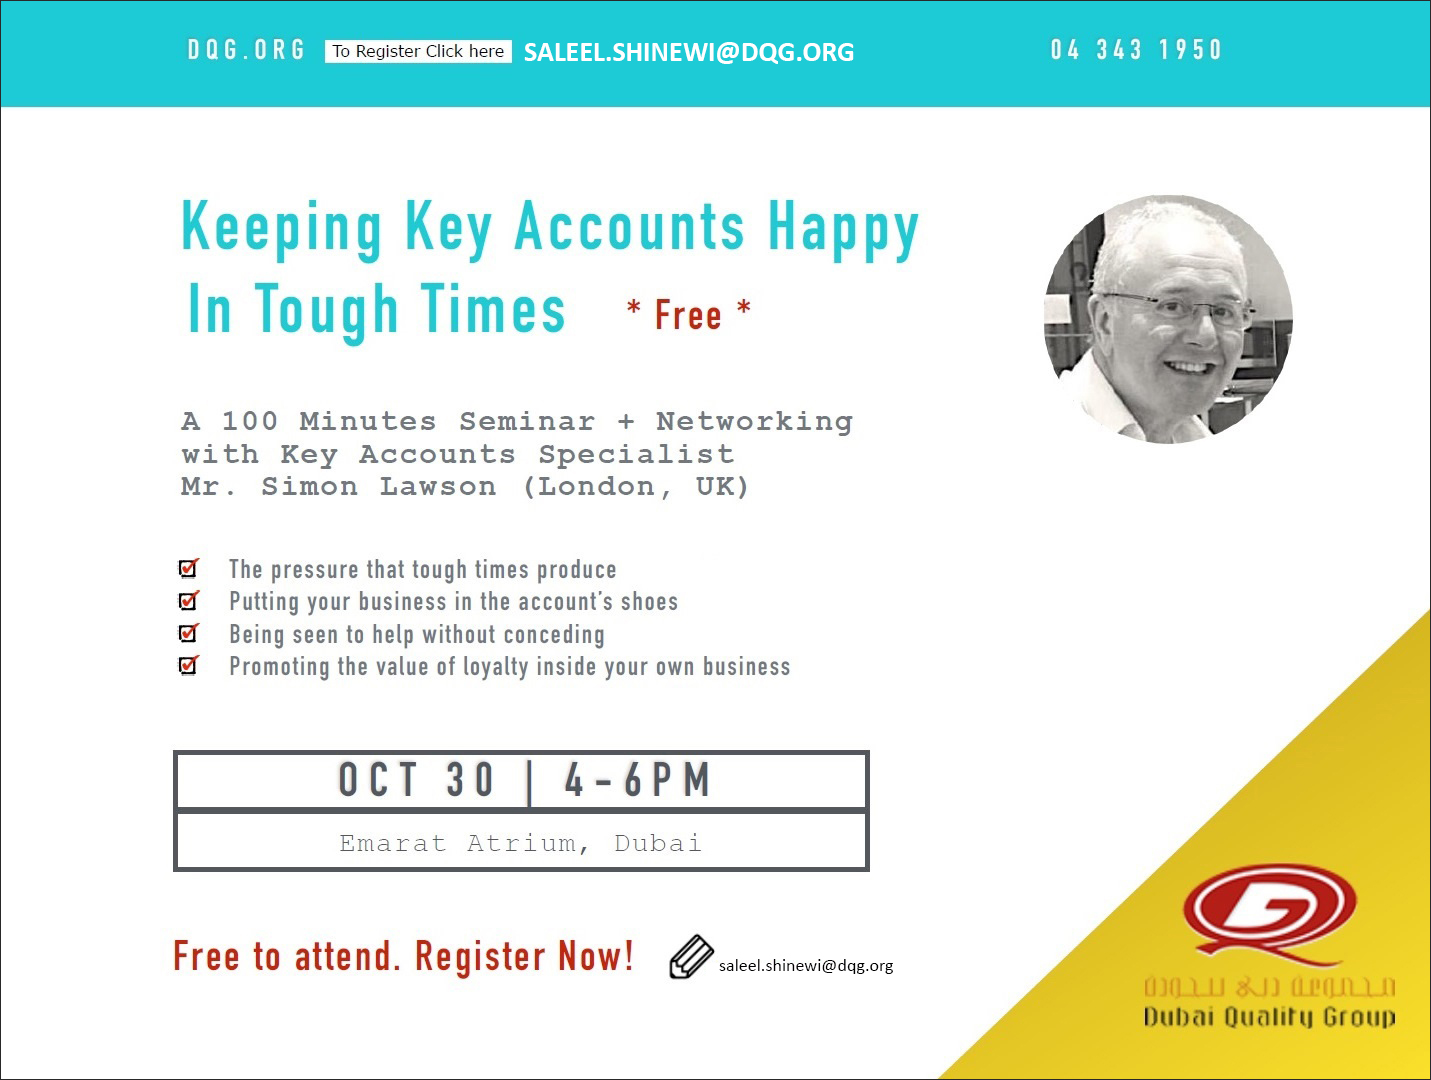 Evening Seminar - Keeping Key Accounts Happy in Tough Times